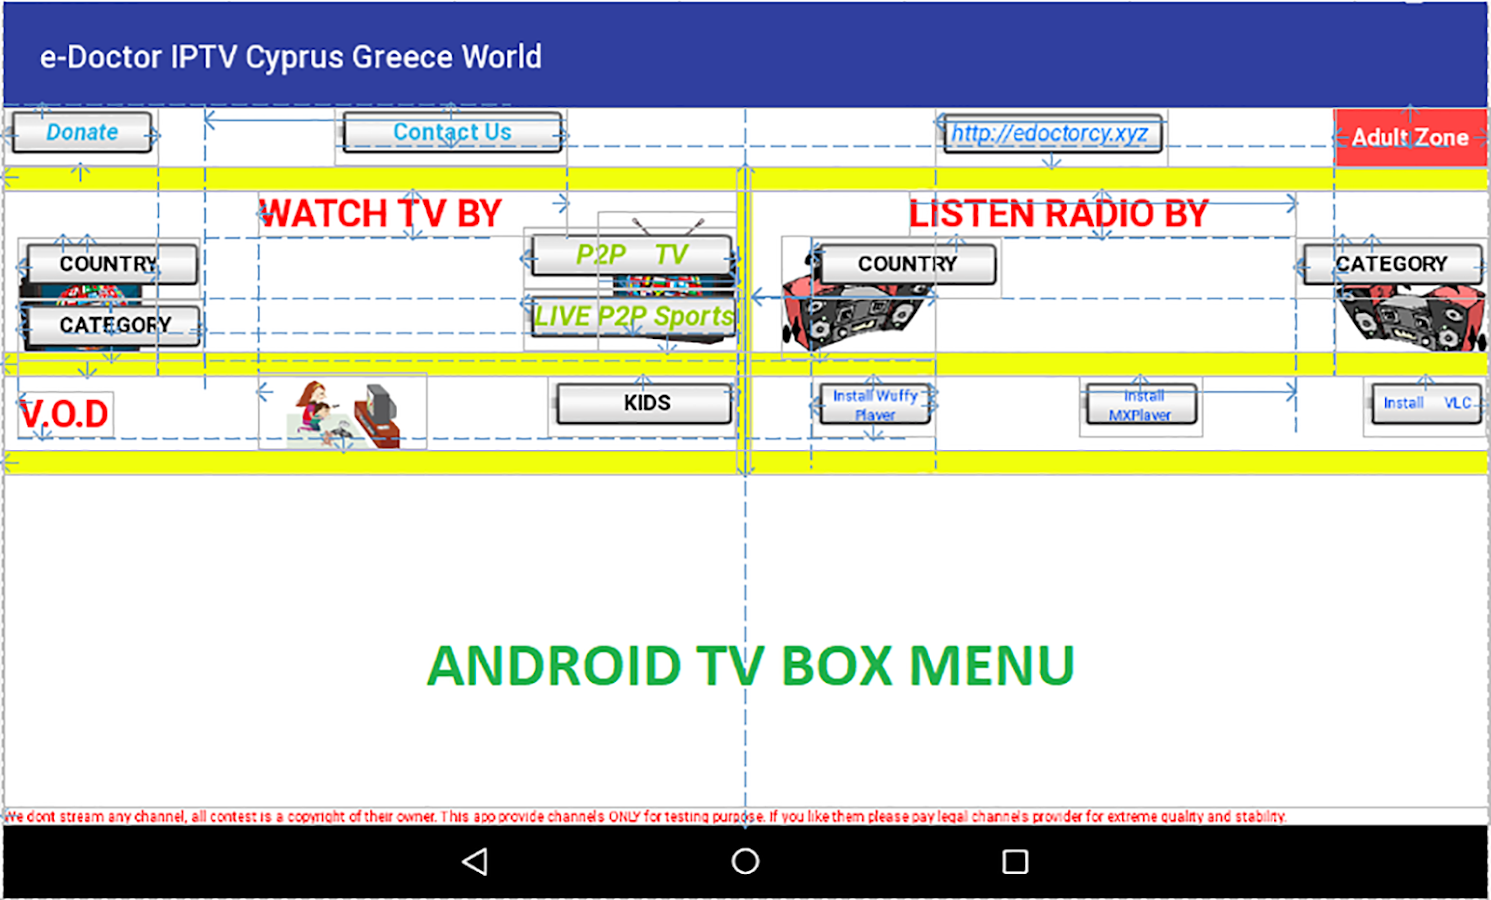 e-Doctor IPTV Cyprus/Greece TV 6 02 APK Download - Android